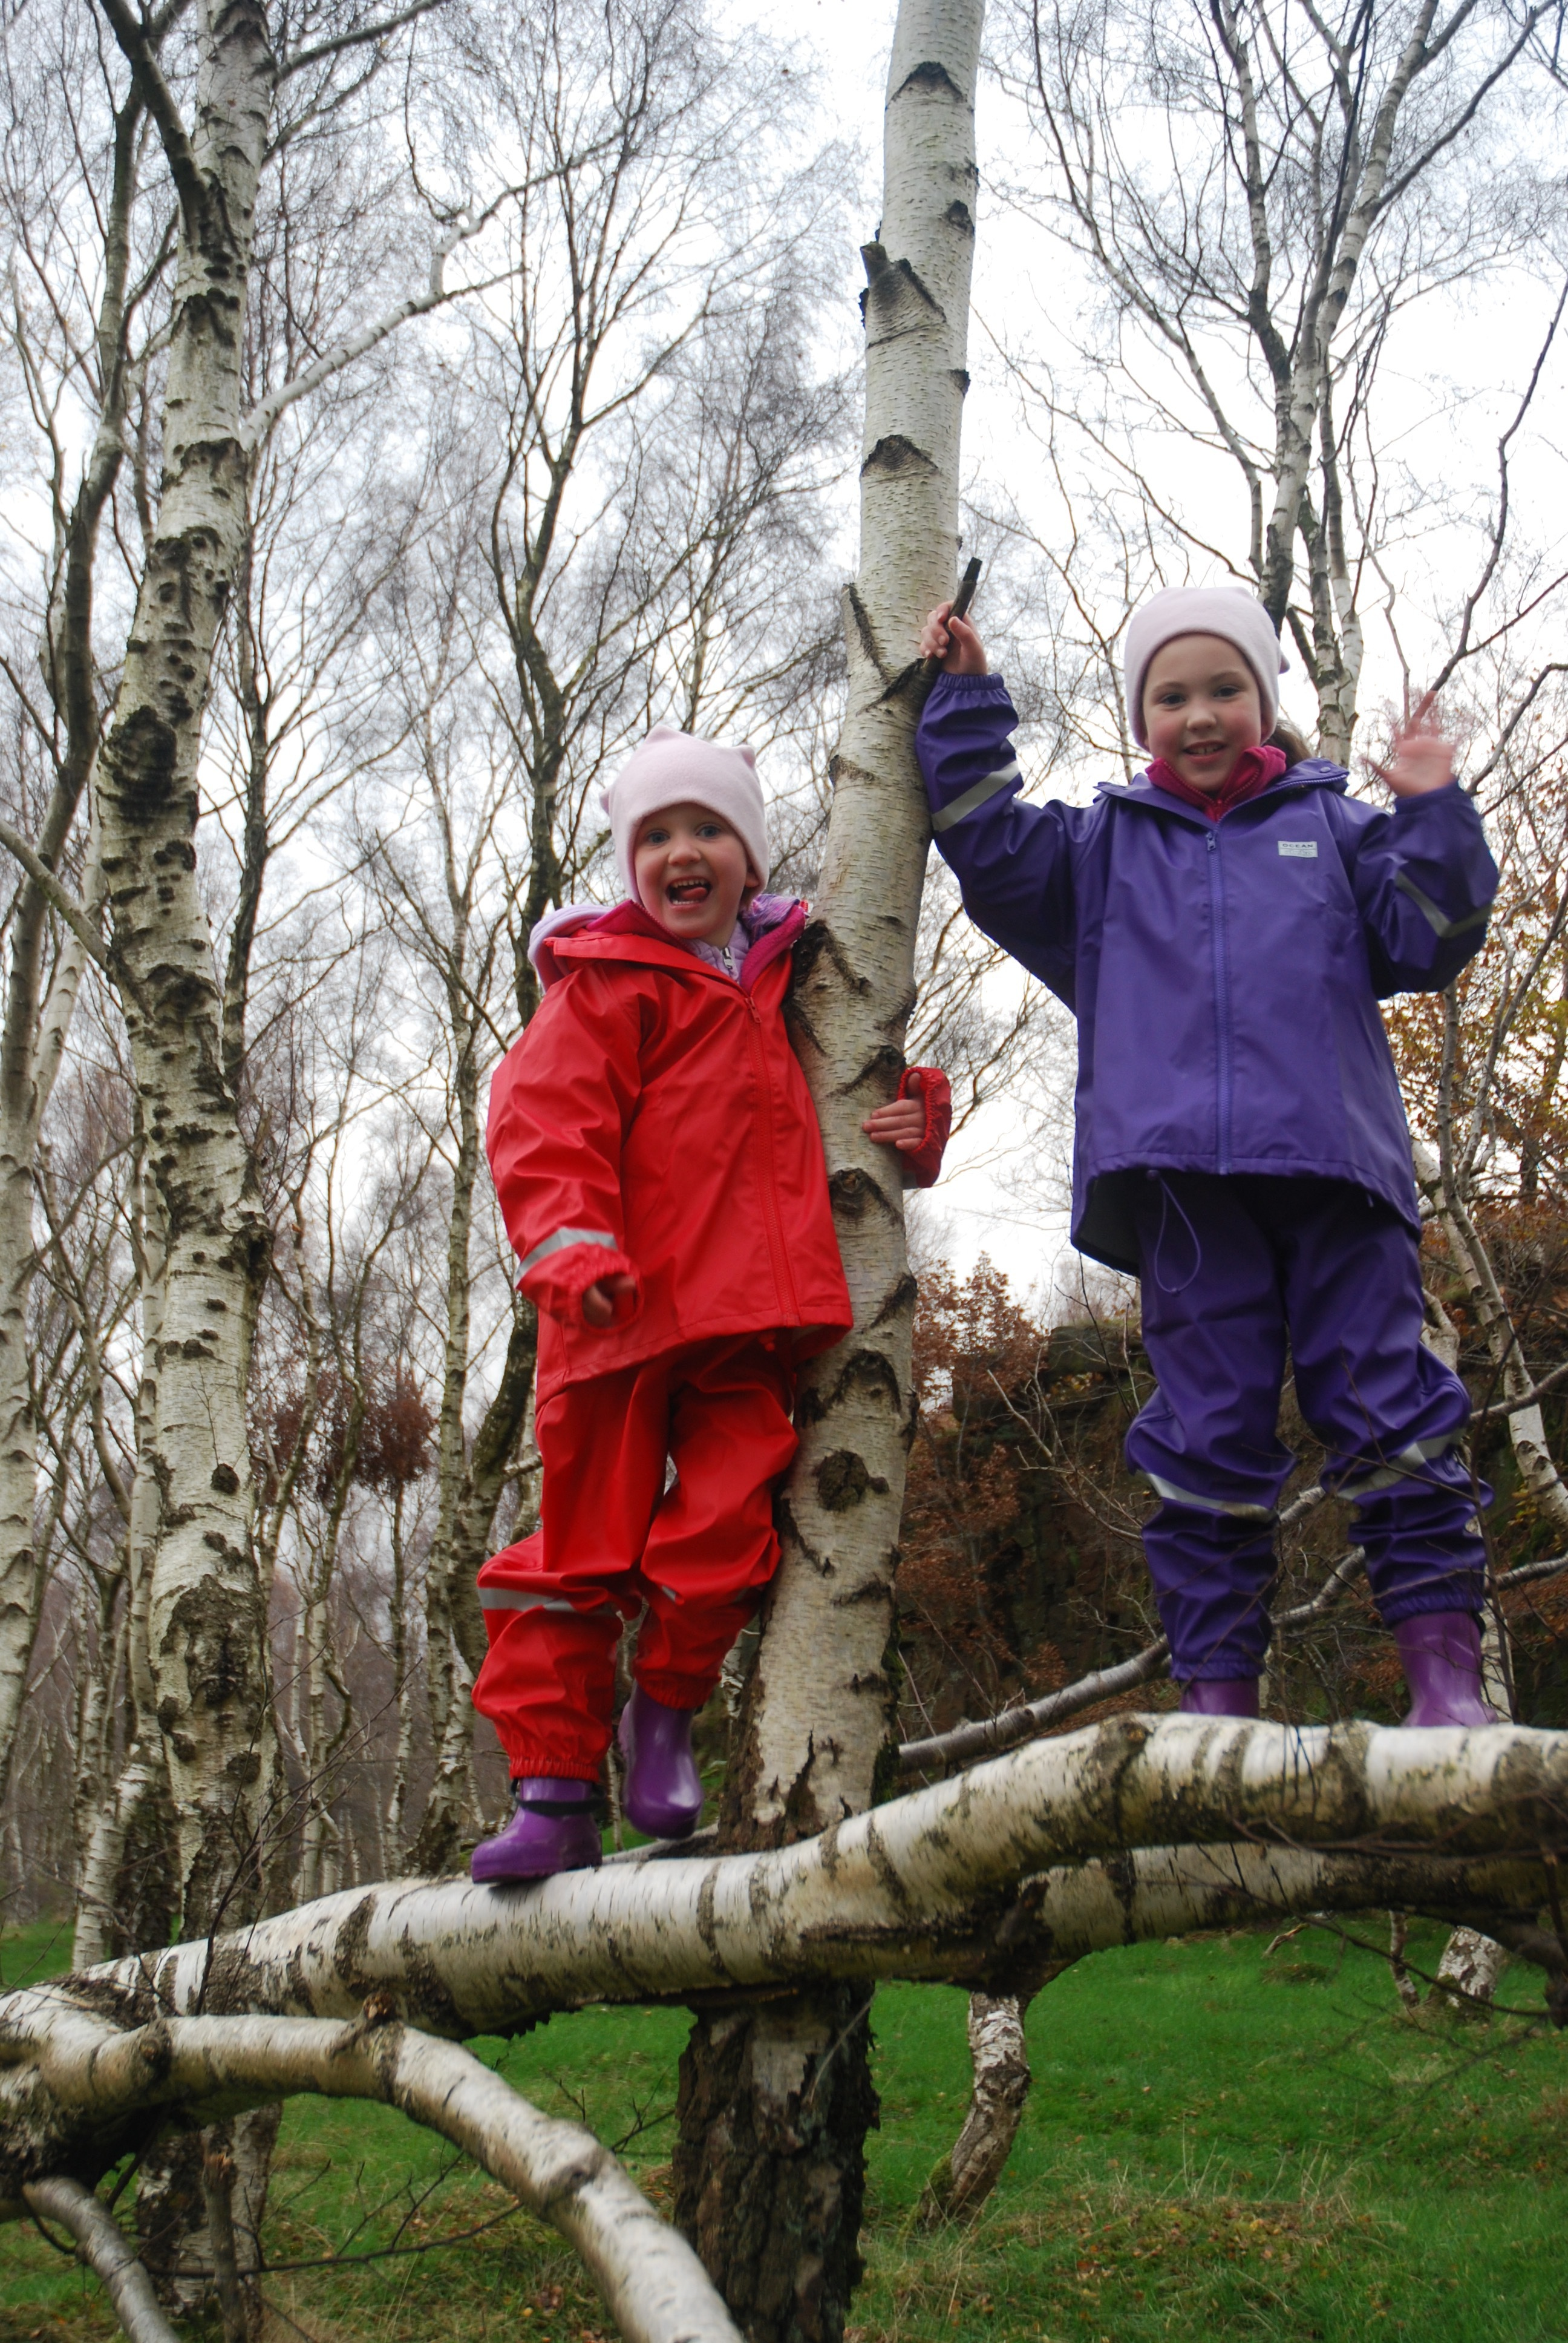 girl in purple rainsuit and girl in red rainsuit, balancing on a tree branch and holding on to the trunk of a birch tree